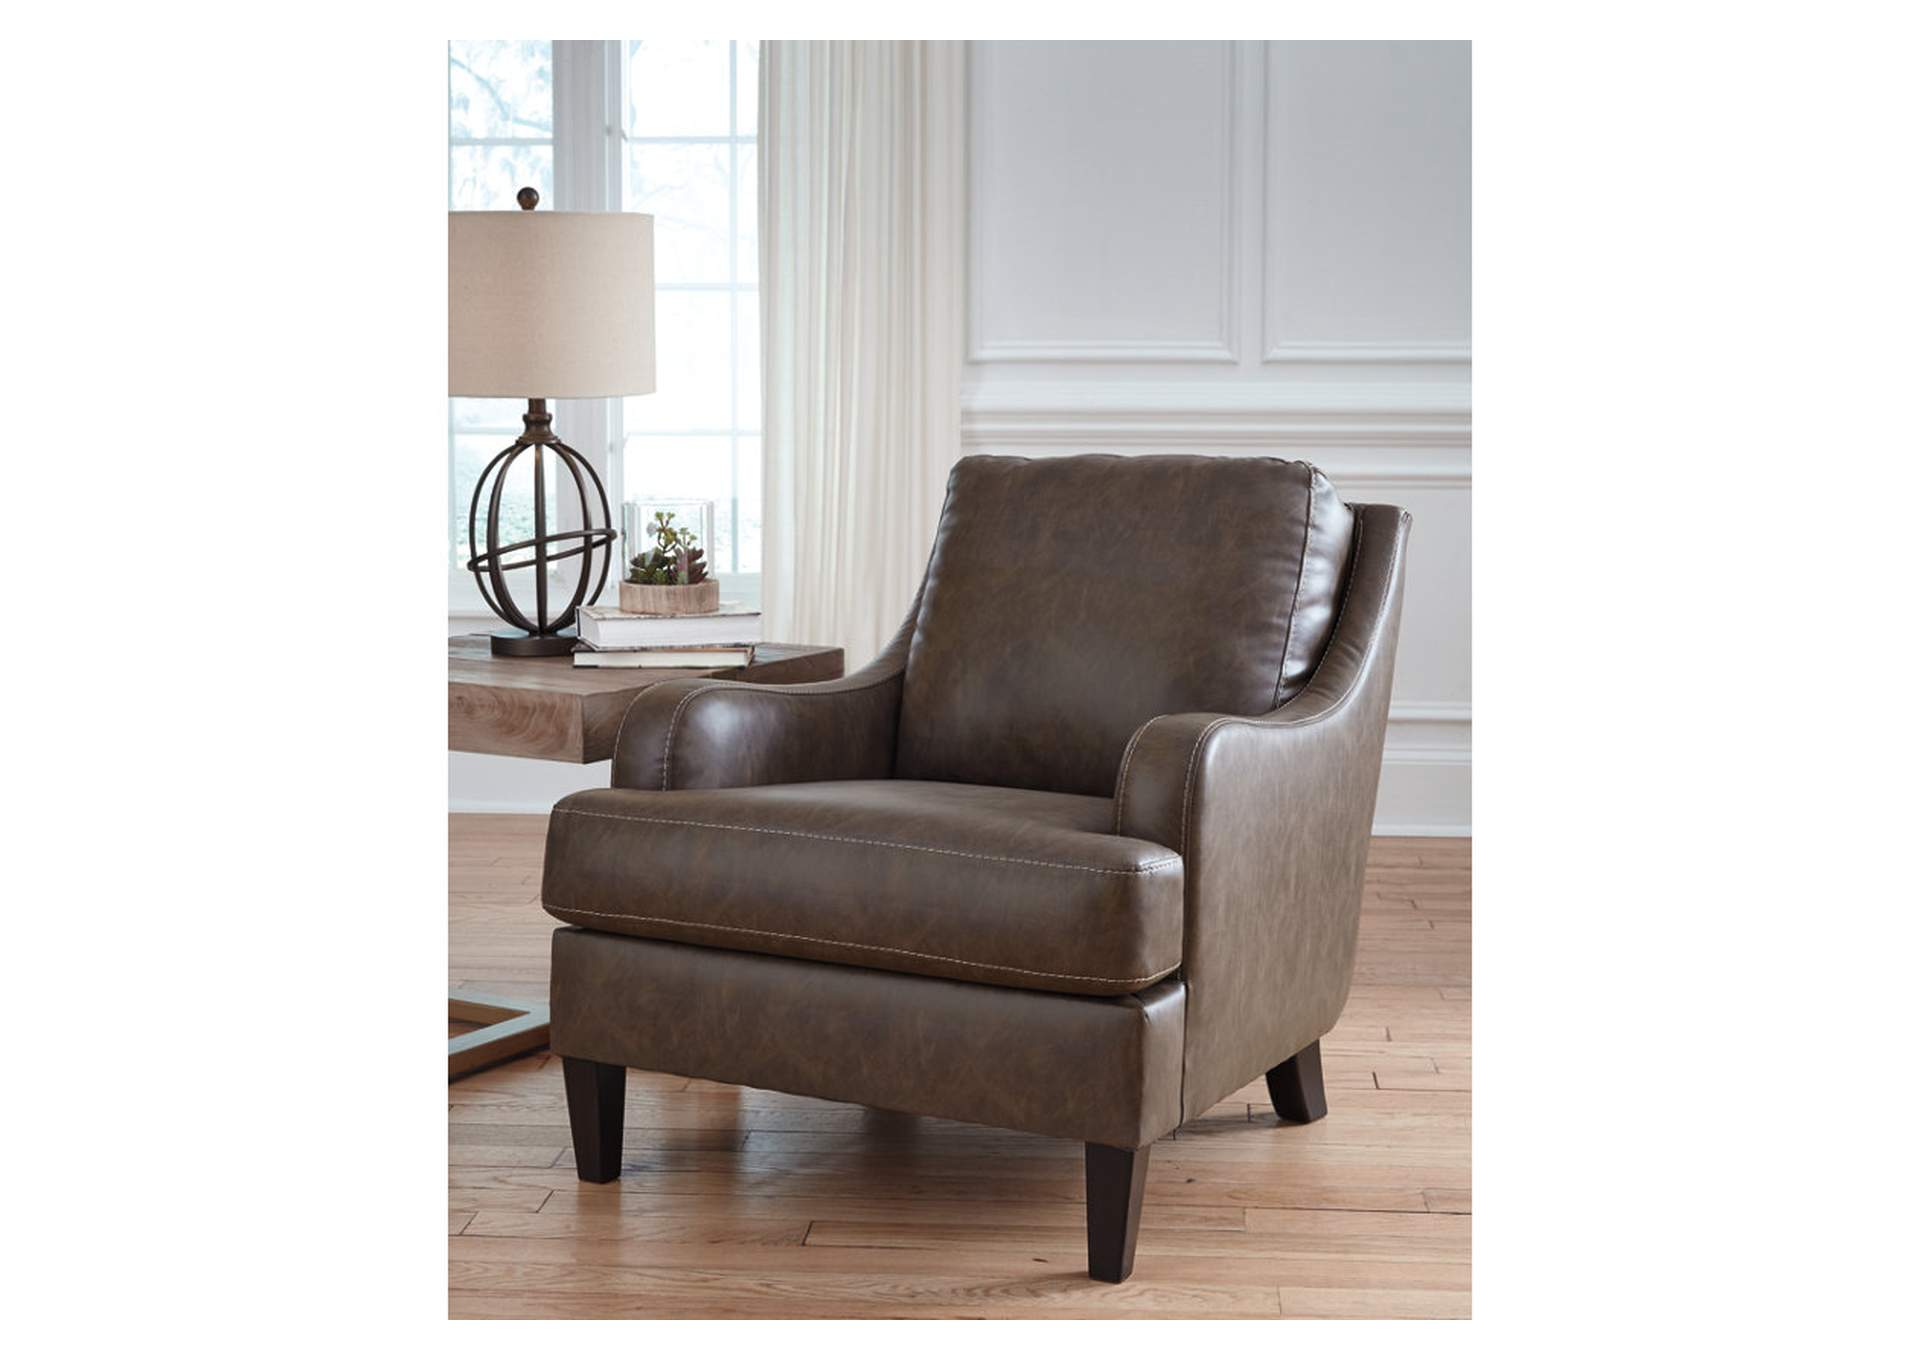 Tirolo Walnut Accent Chair,Signature Design By Ashley